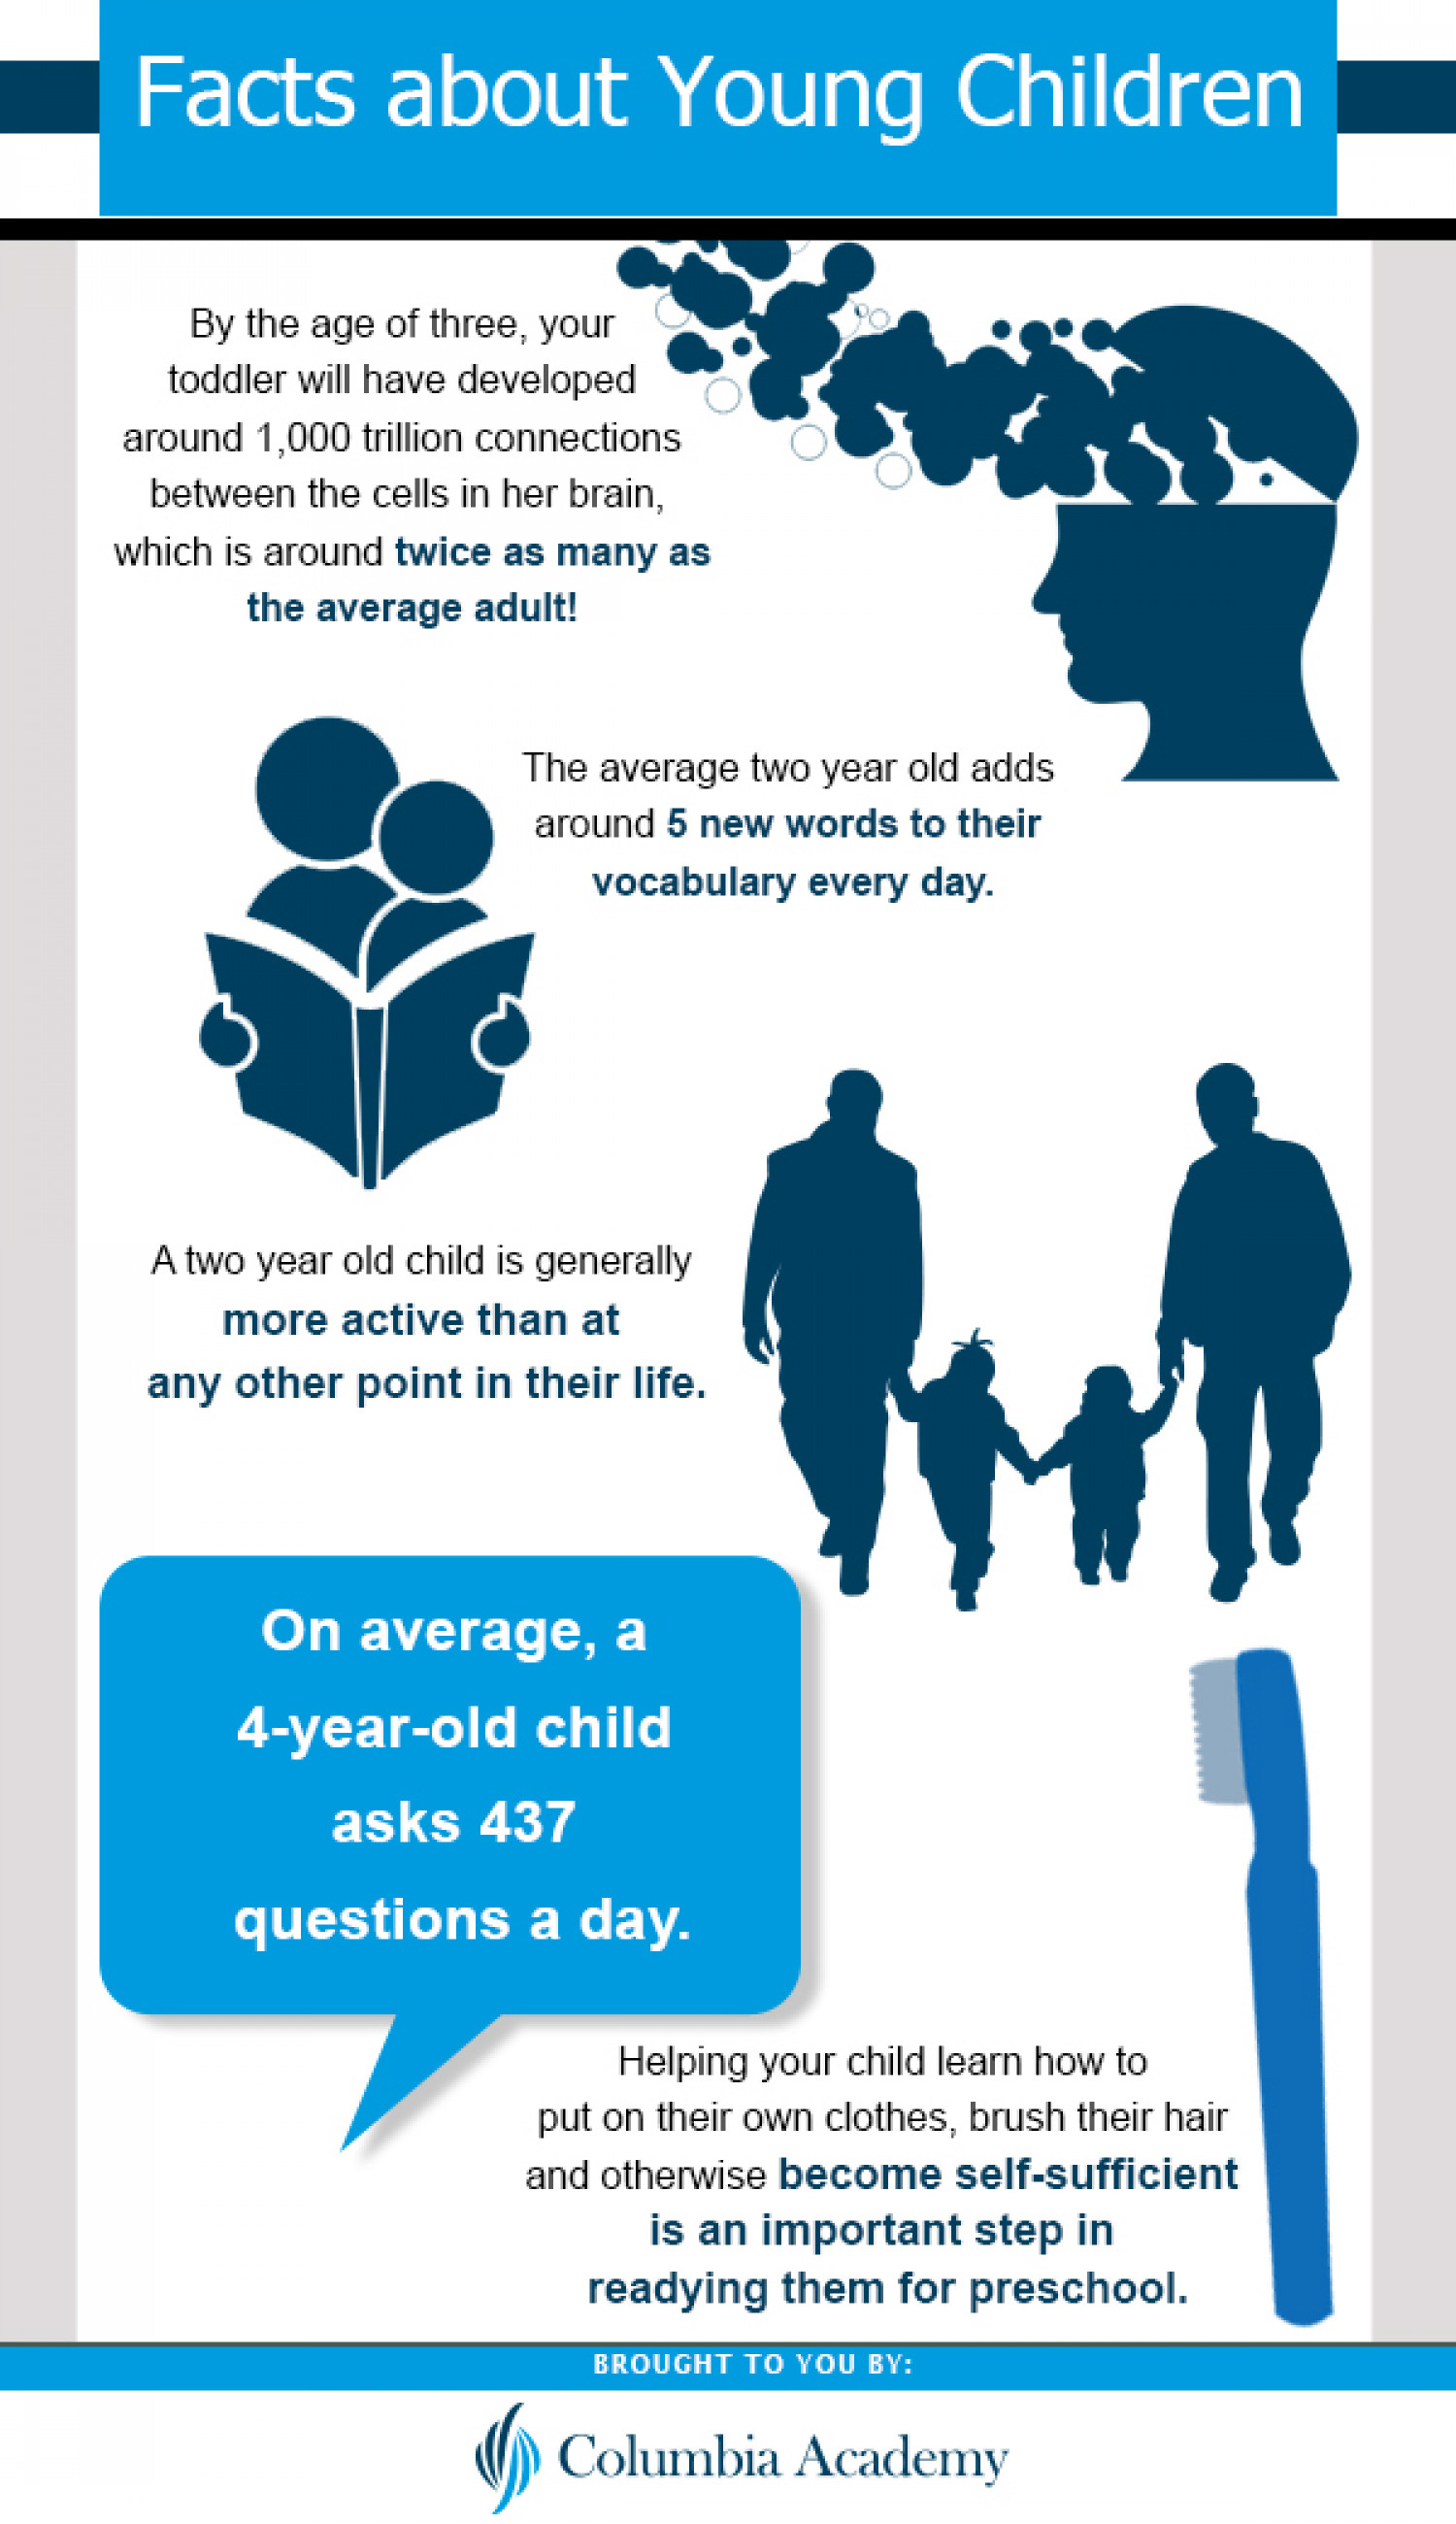 Facts About Young Children Infographic